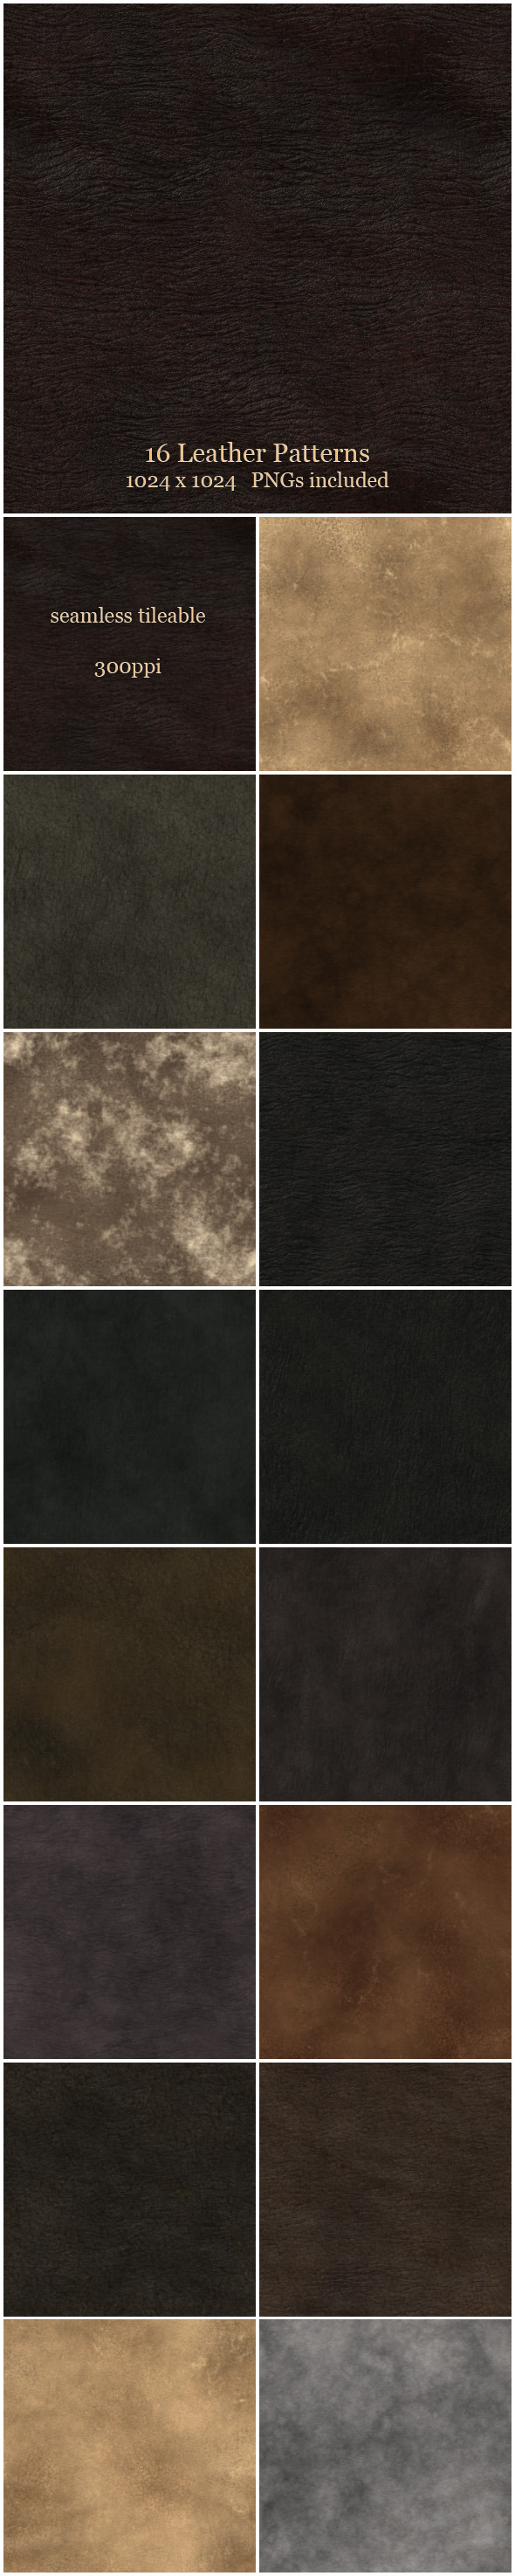 16 Leather Patterns - Miscellaneous Textures / Fills / Patterns